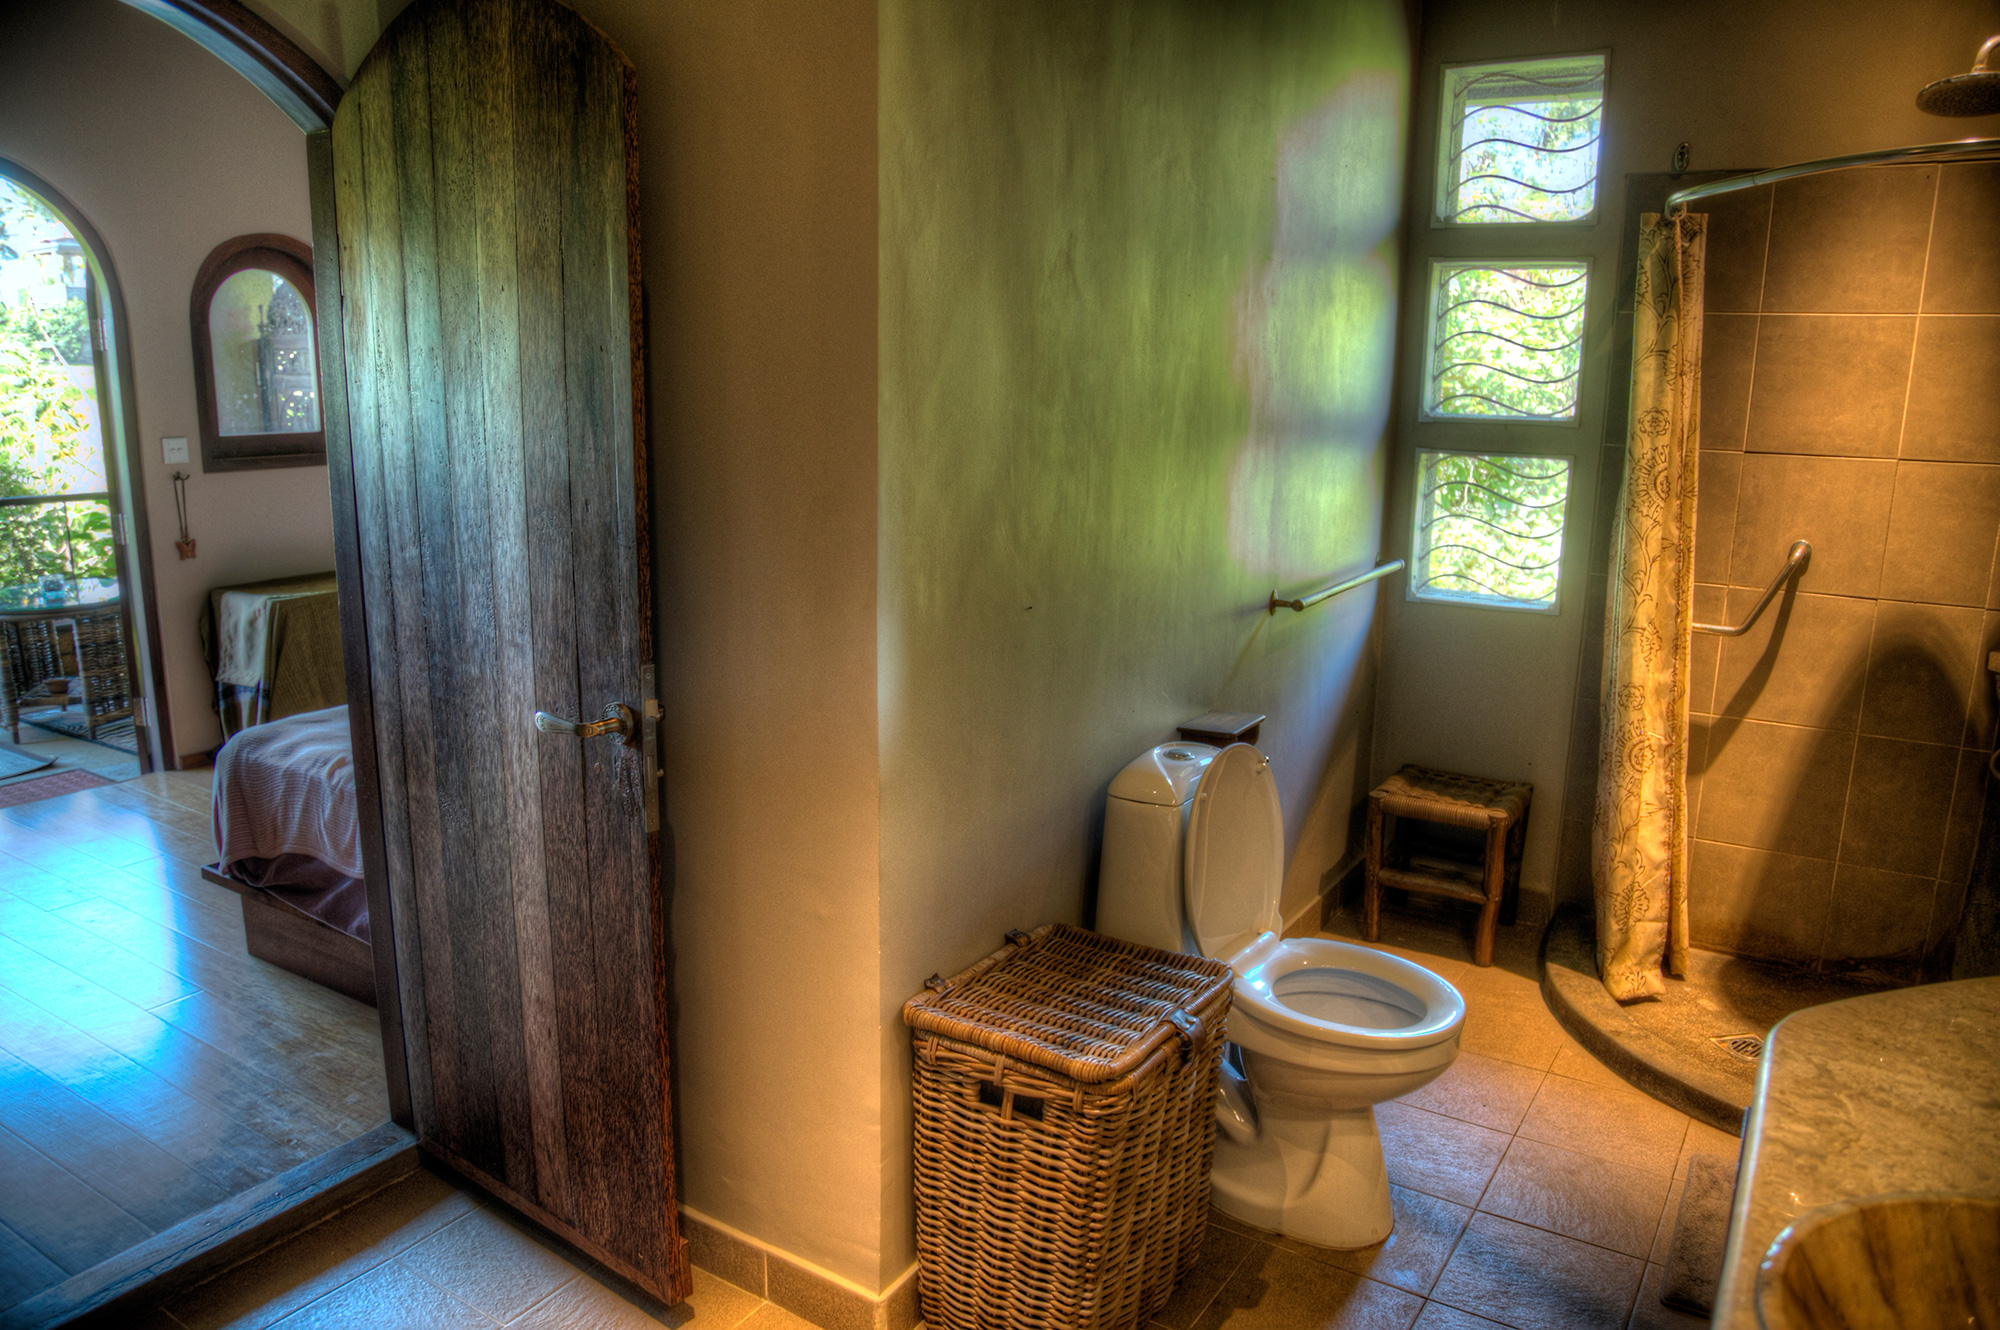 474A9113_4_5_tonemapped